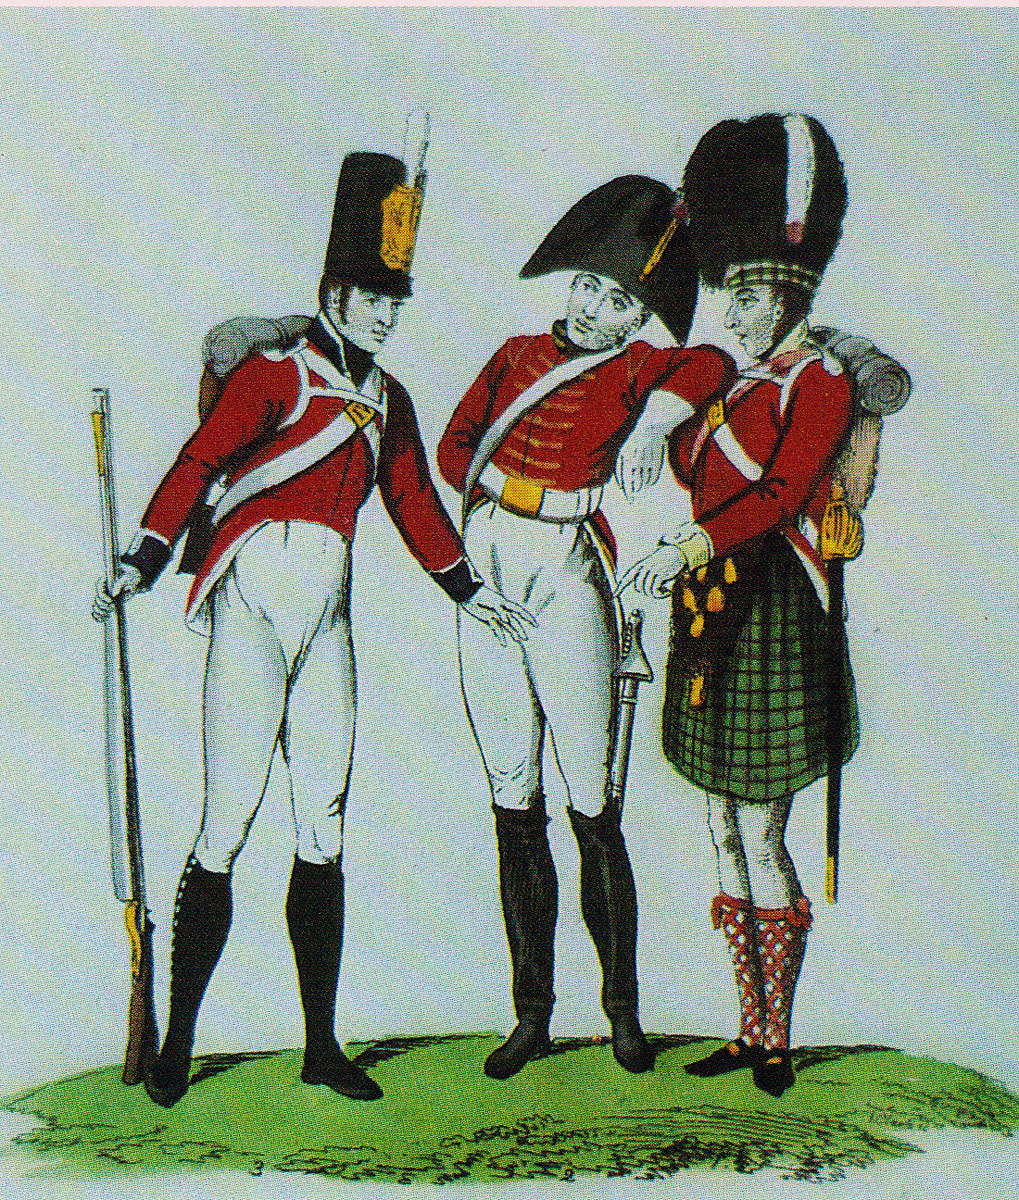 Royal Dragoon with 2 infantrymen: Battle of Redinha or Pombal fought on 12th March 1811 in the Peninsular War